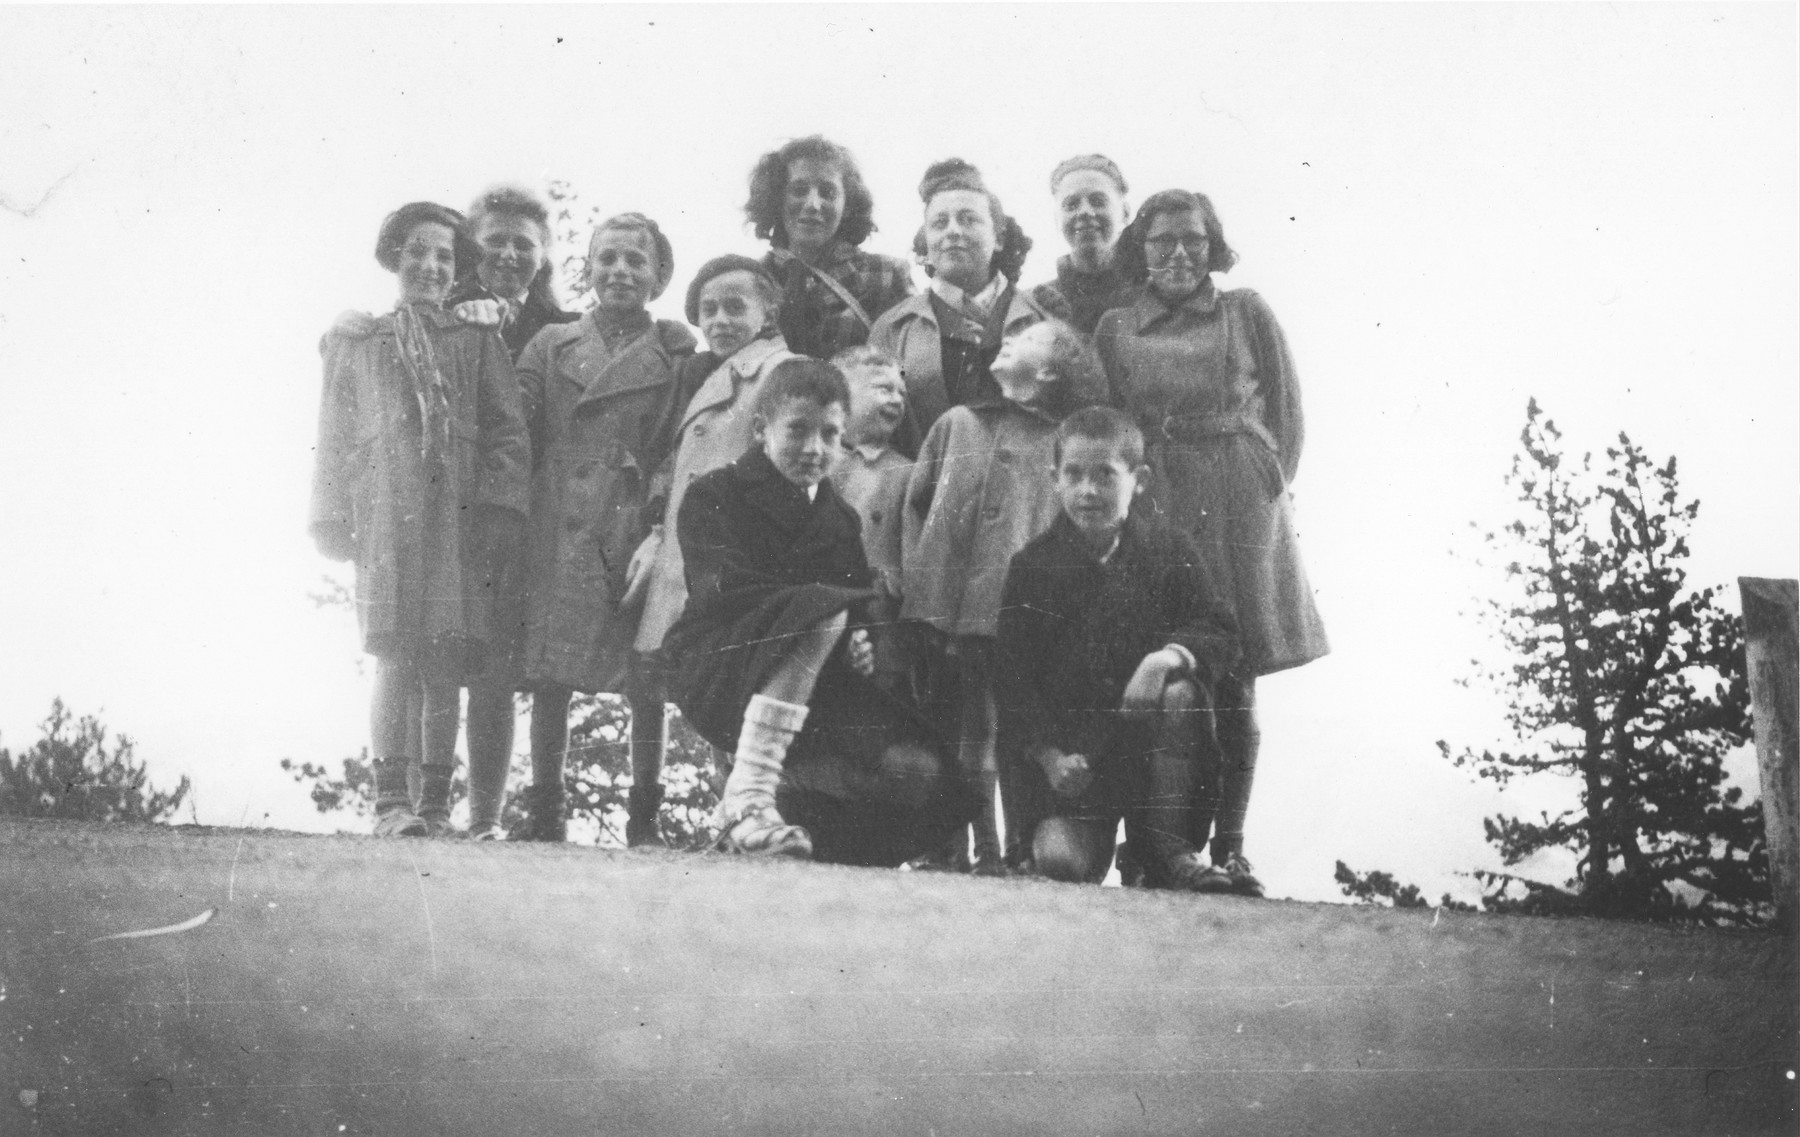 OSE workers pose with a group of children in Font-Romeu, a summer camp site, where they were brought after being smuggled out of the Rivesaltes internment camp.